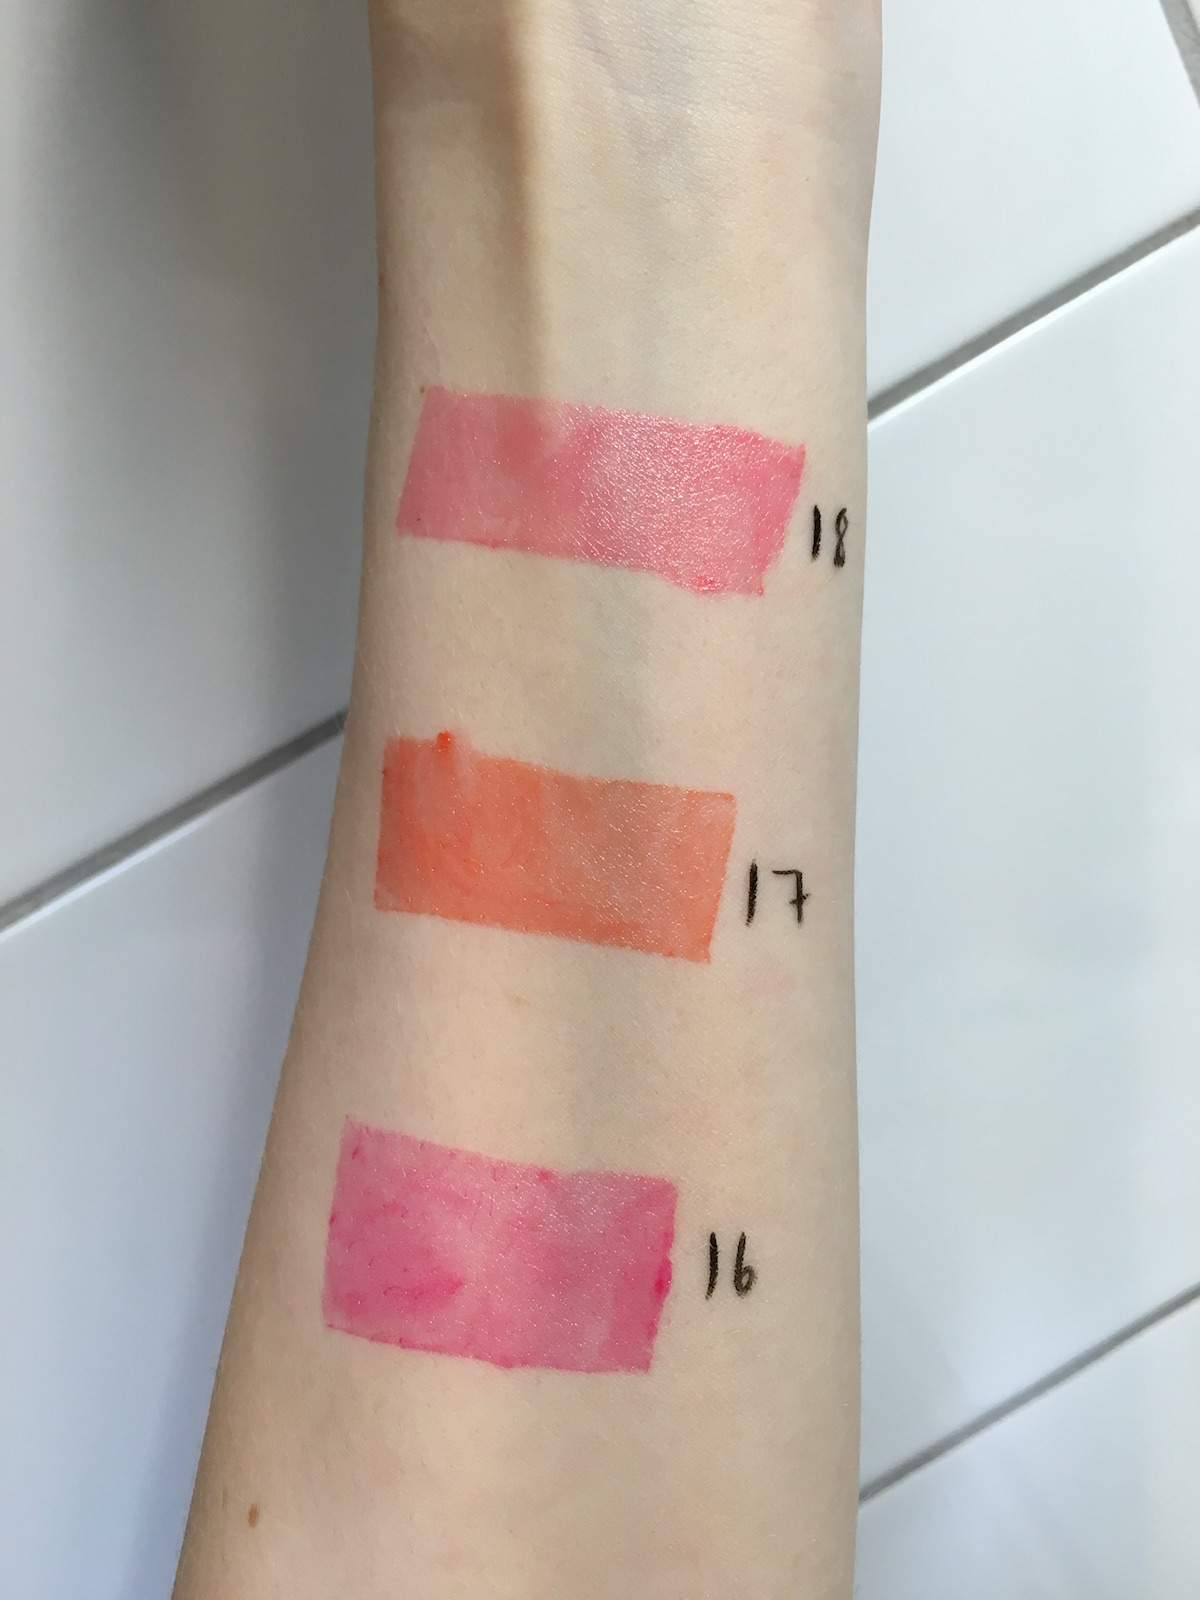 By Terry Sun Cruise Hyaluronic Sheer Rouge Limited Edition Swatshes |skonhetssnack.se